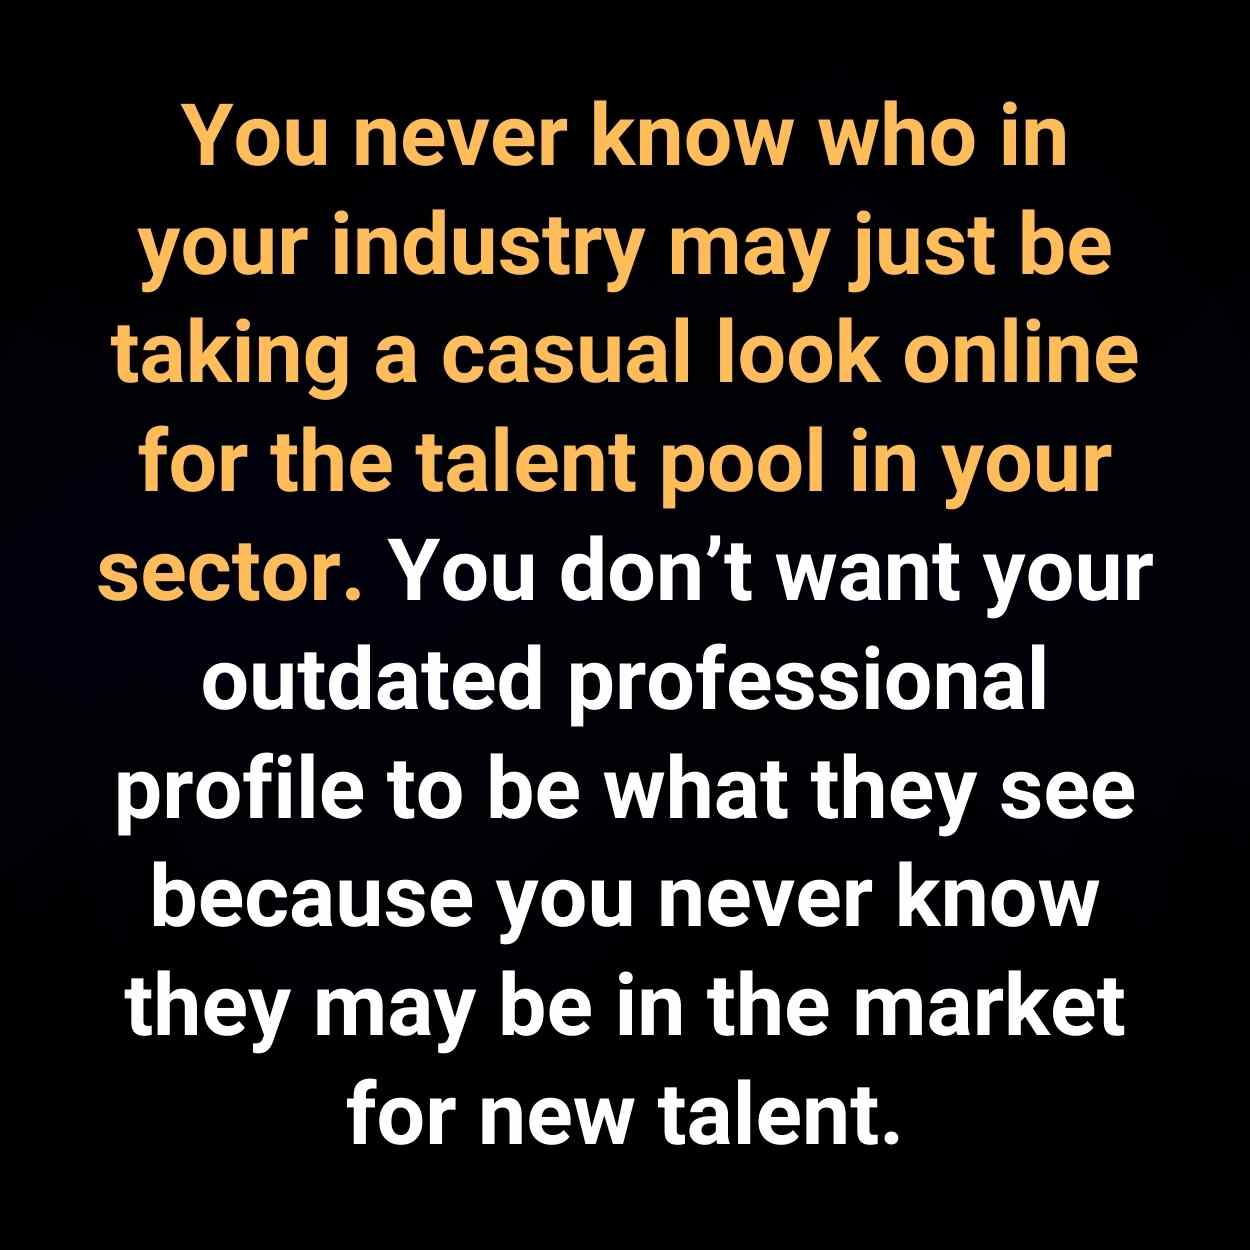 You never know who in your industry may just be taking a casual look online for the talent pool in your sector. You don't want your outdated professional profile to be what they see because you never know they may be in the market for new talent.